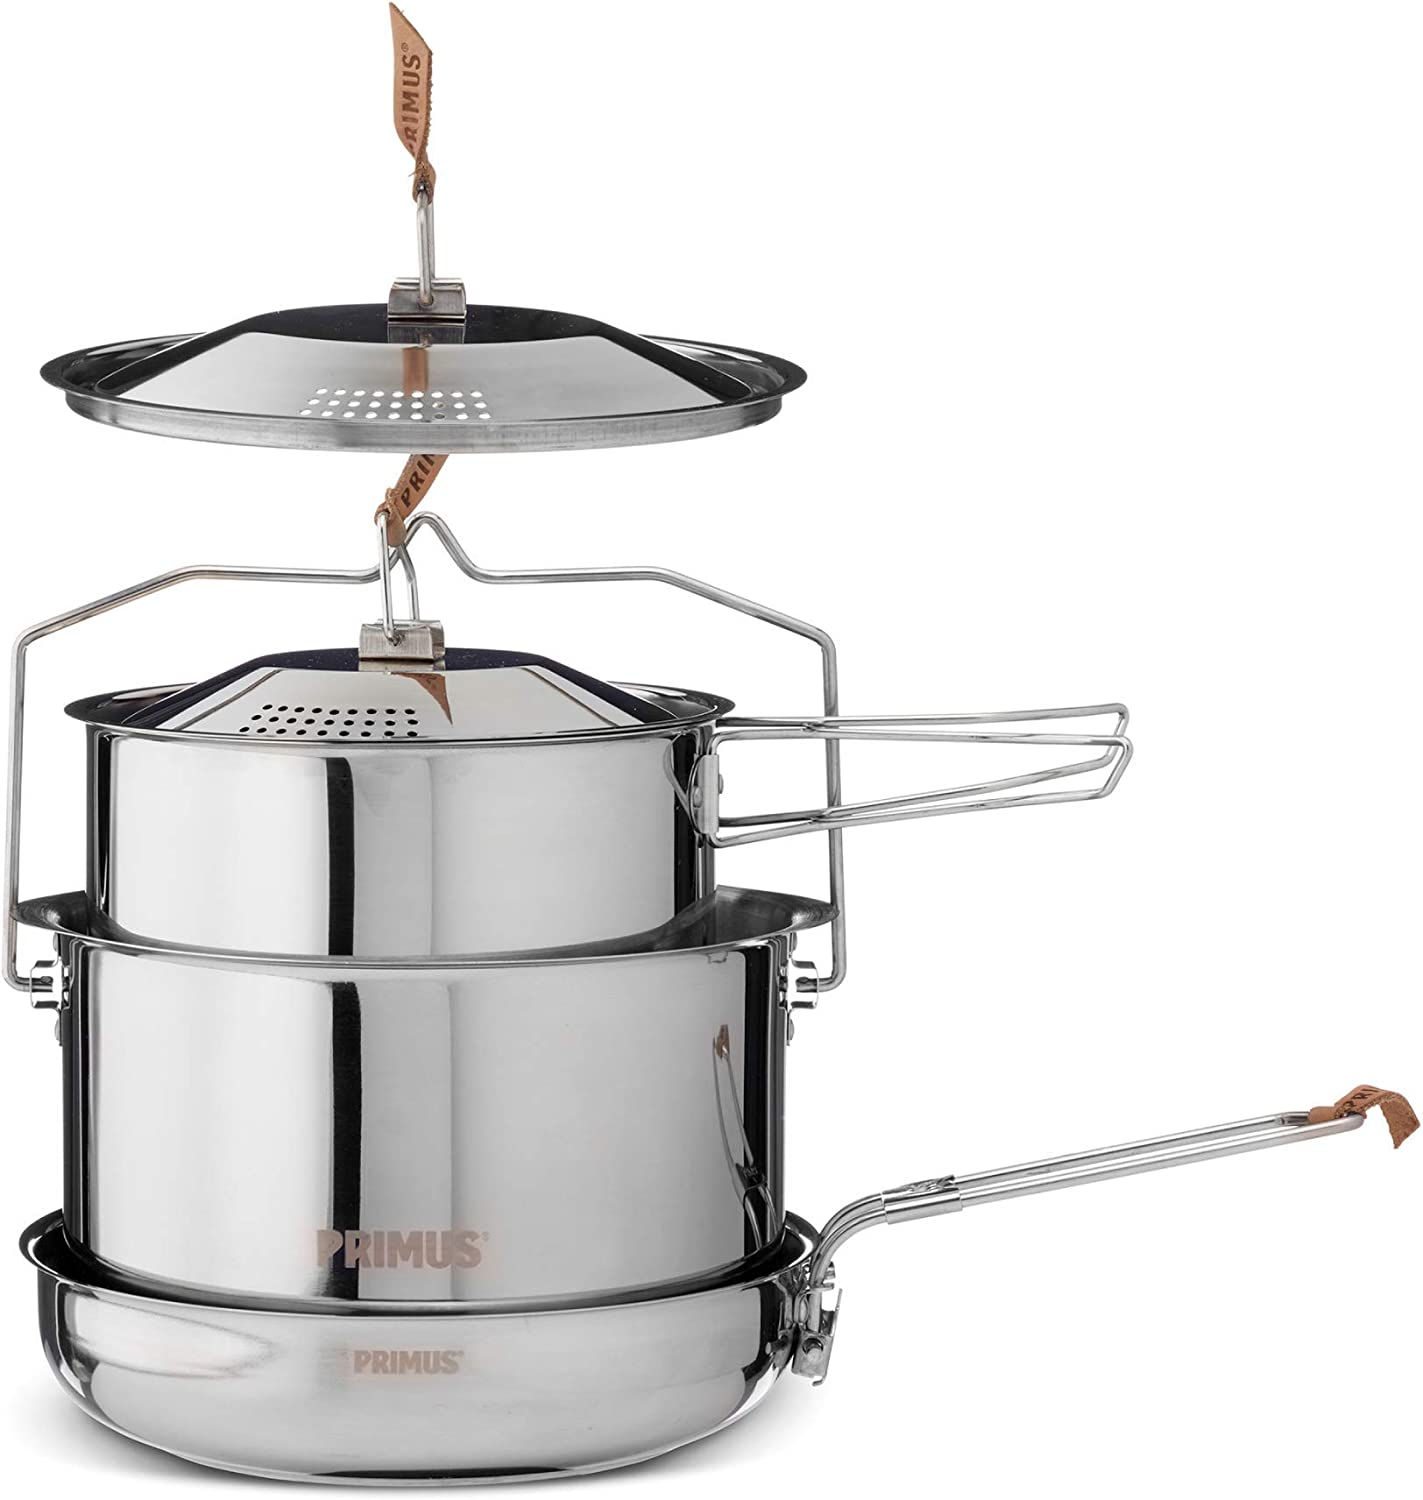 Primus | Stainless Steel Campfire Cookset | Nesting Pots & Pan for Camping and Outdoor Cooking